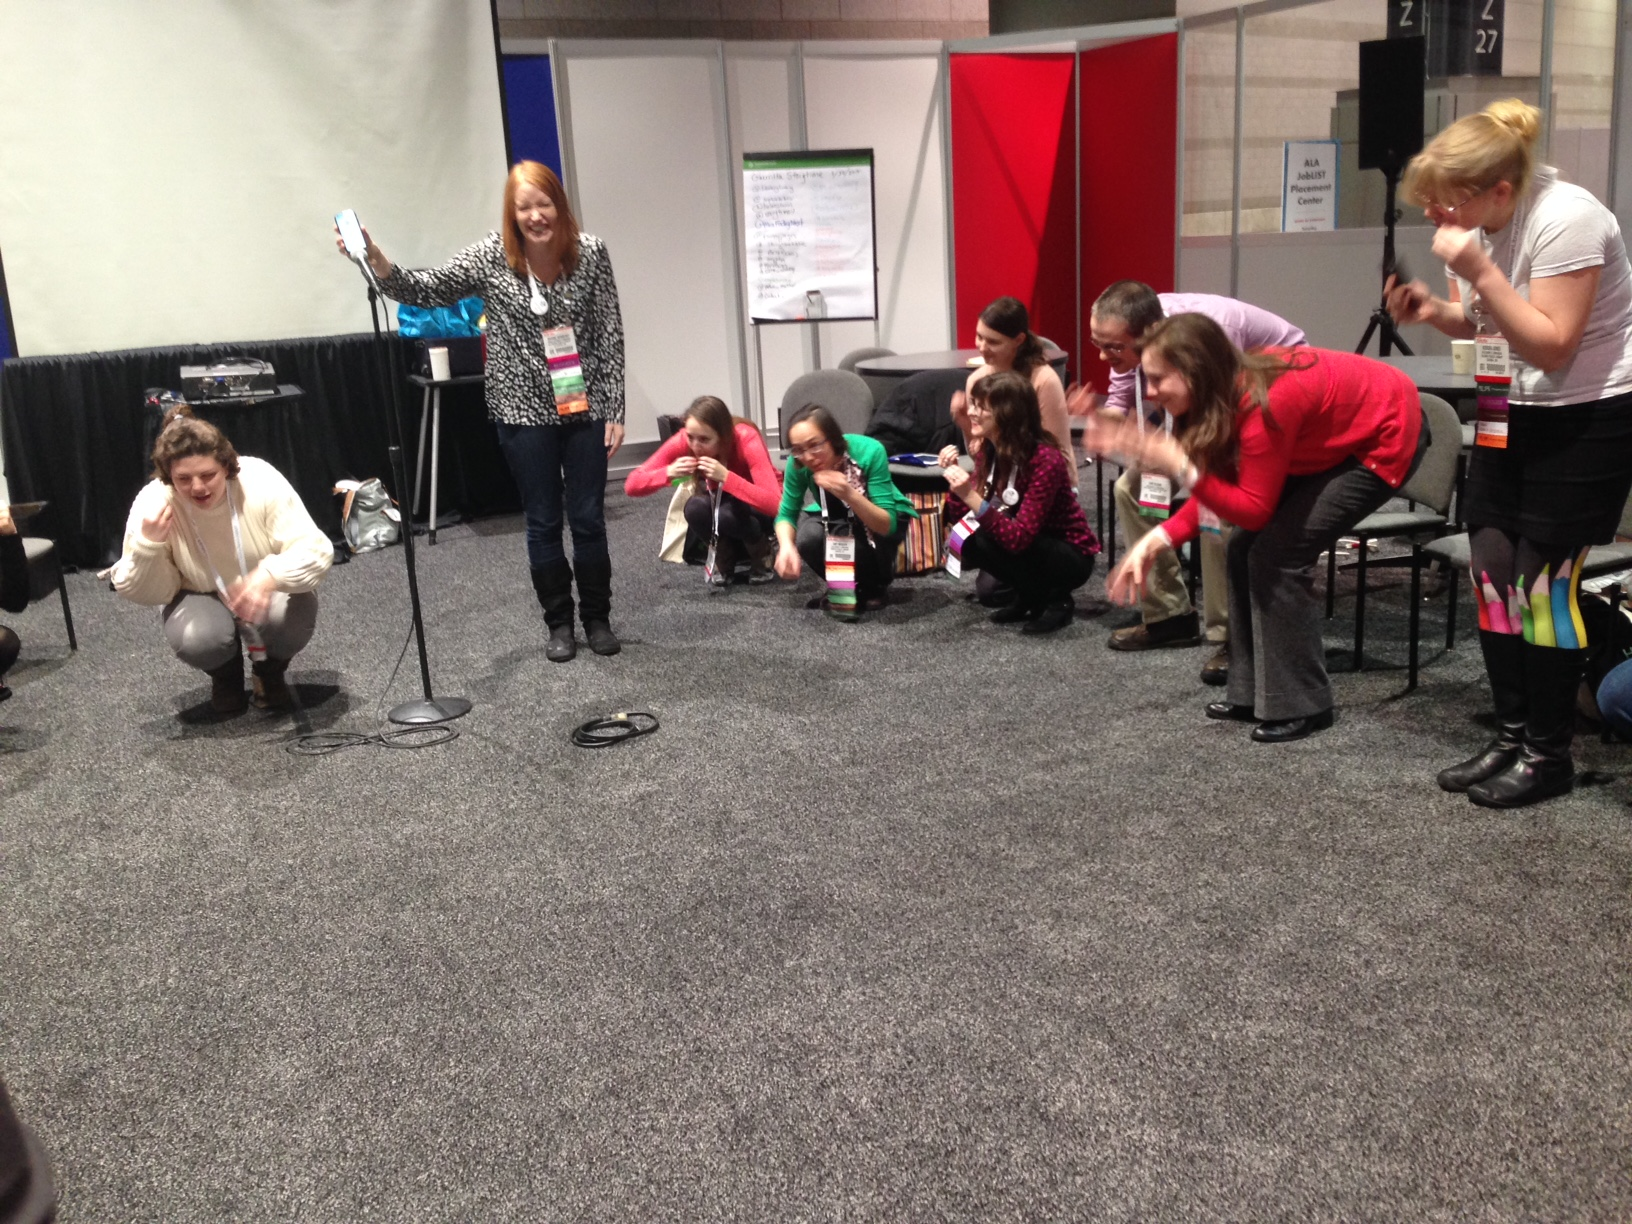 Guerrilla Storytime Is Growing Up | ALA Midwinter 2015